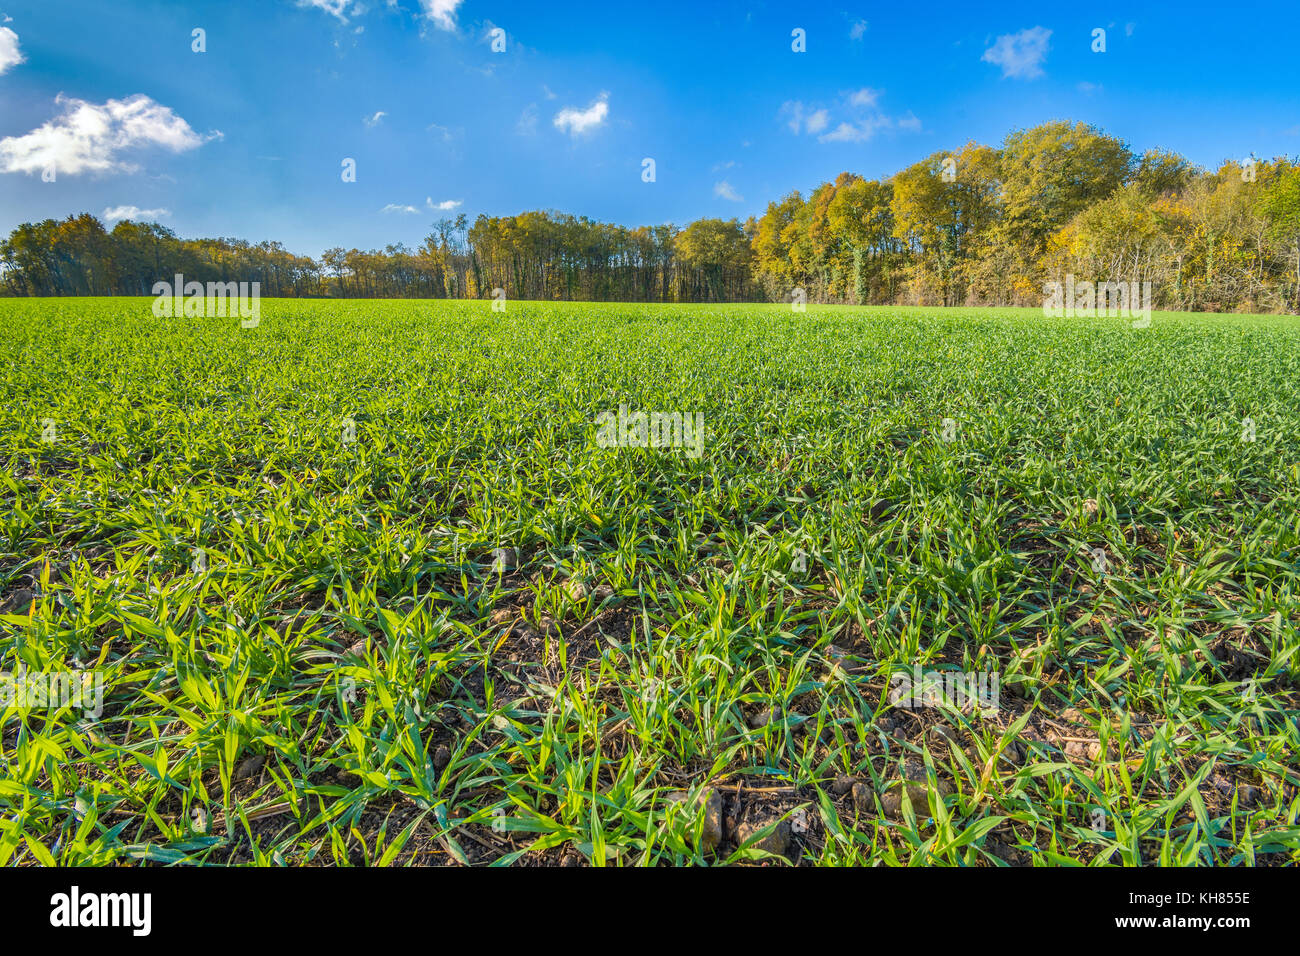 Early winter wheat on farmland - France. - Stock Image